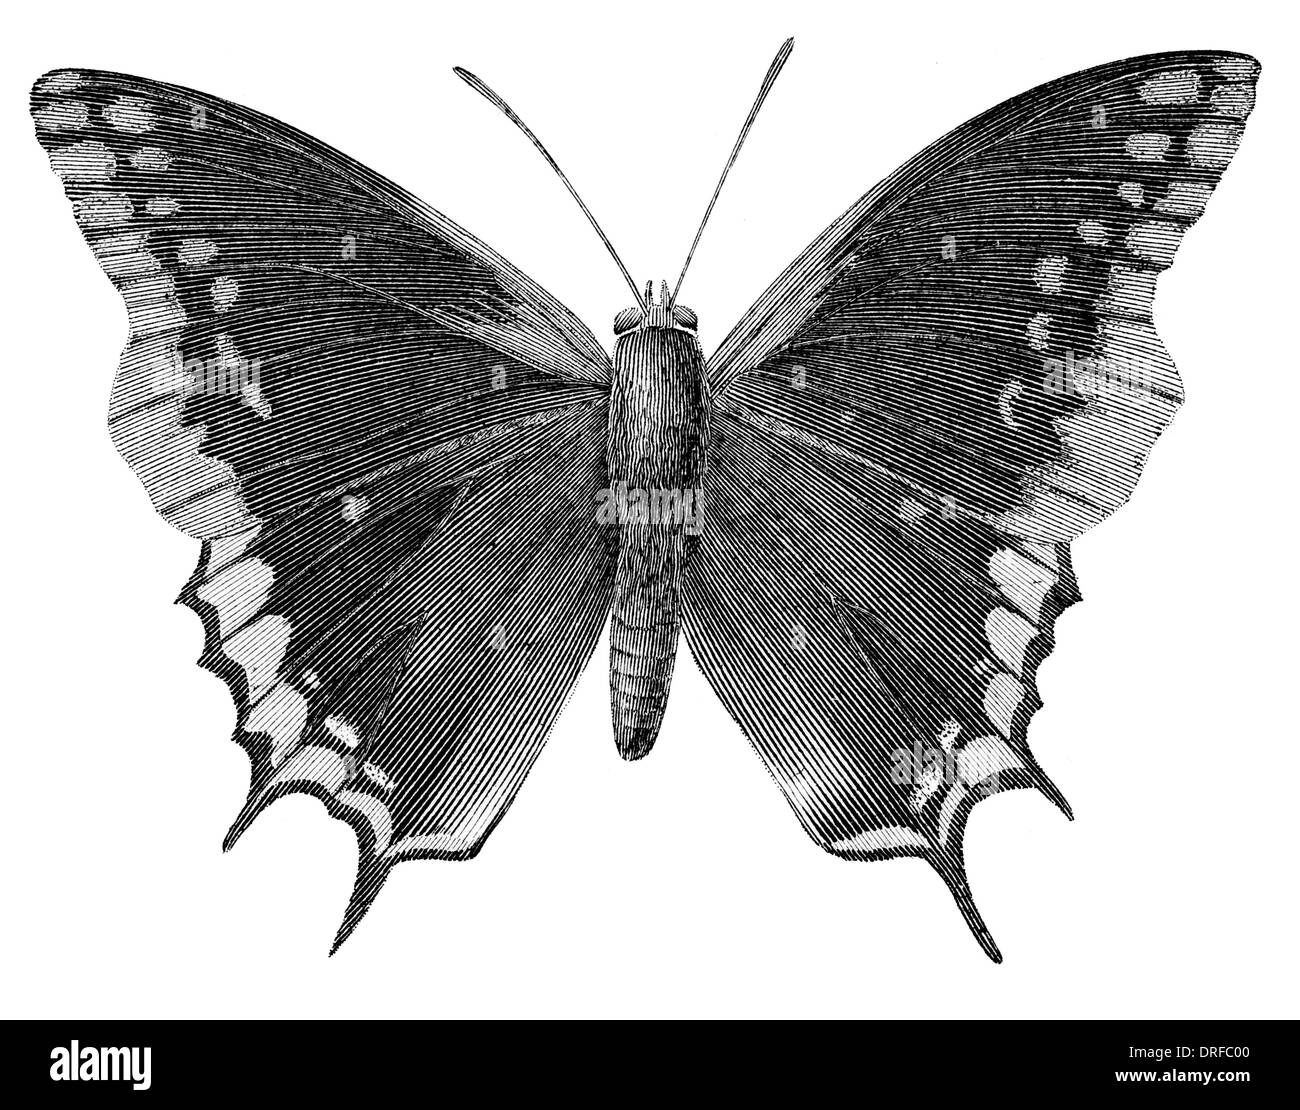 Nymphalis Jasius Charaxes jasius, the Two-tailed Pasha or Foxy Emperor, is a butterfly in the family Nymphalidae. - Stock Image